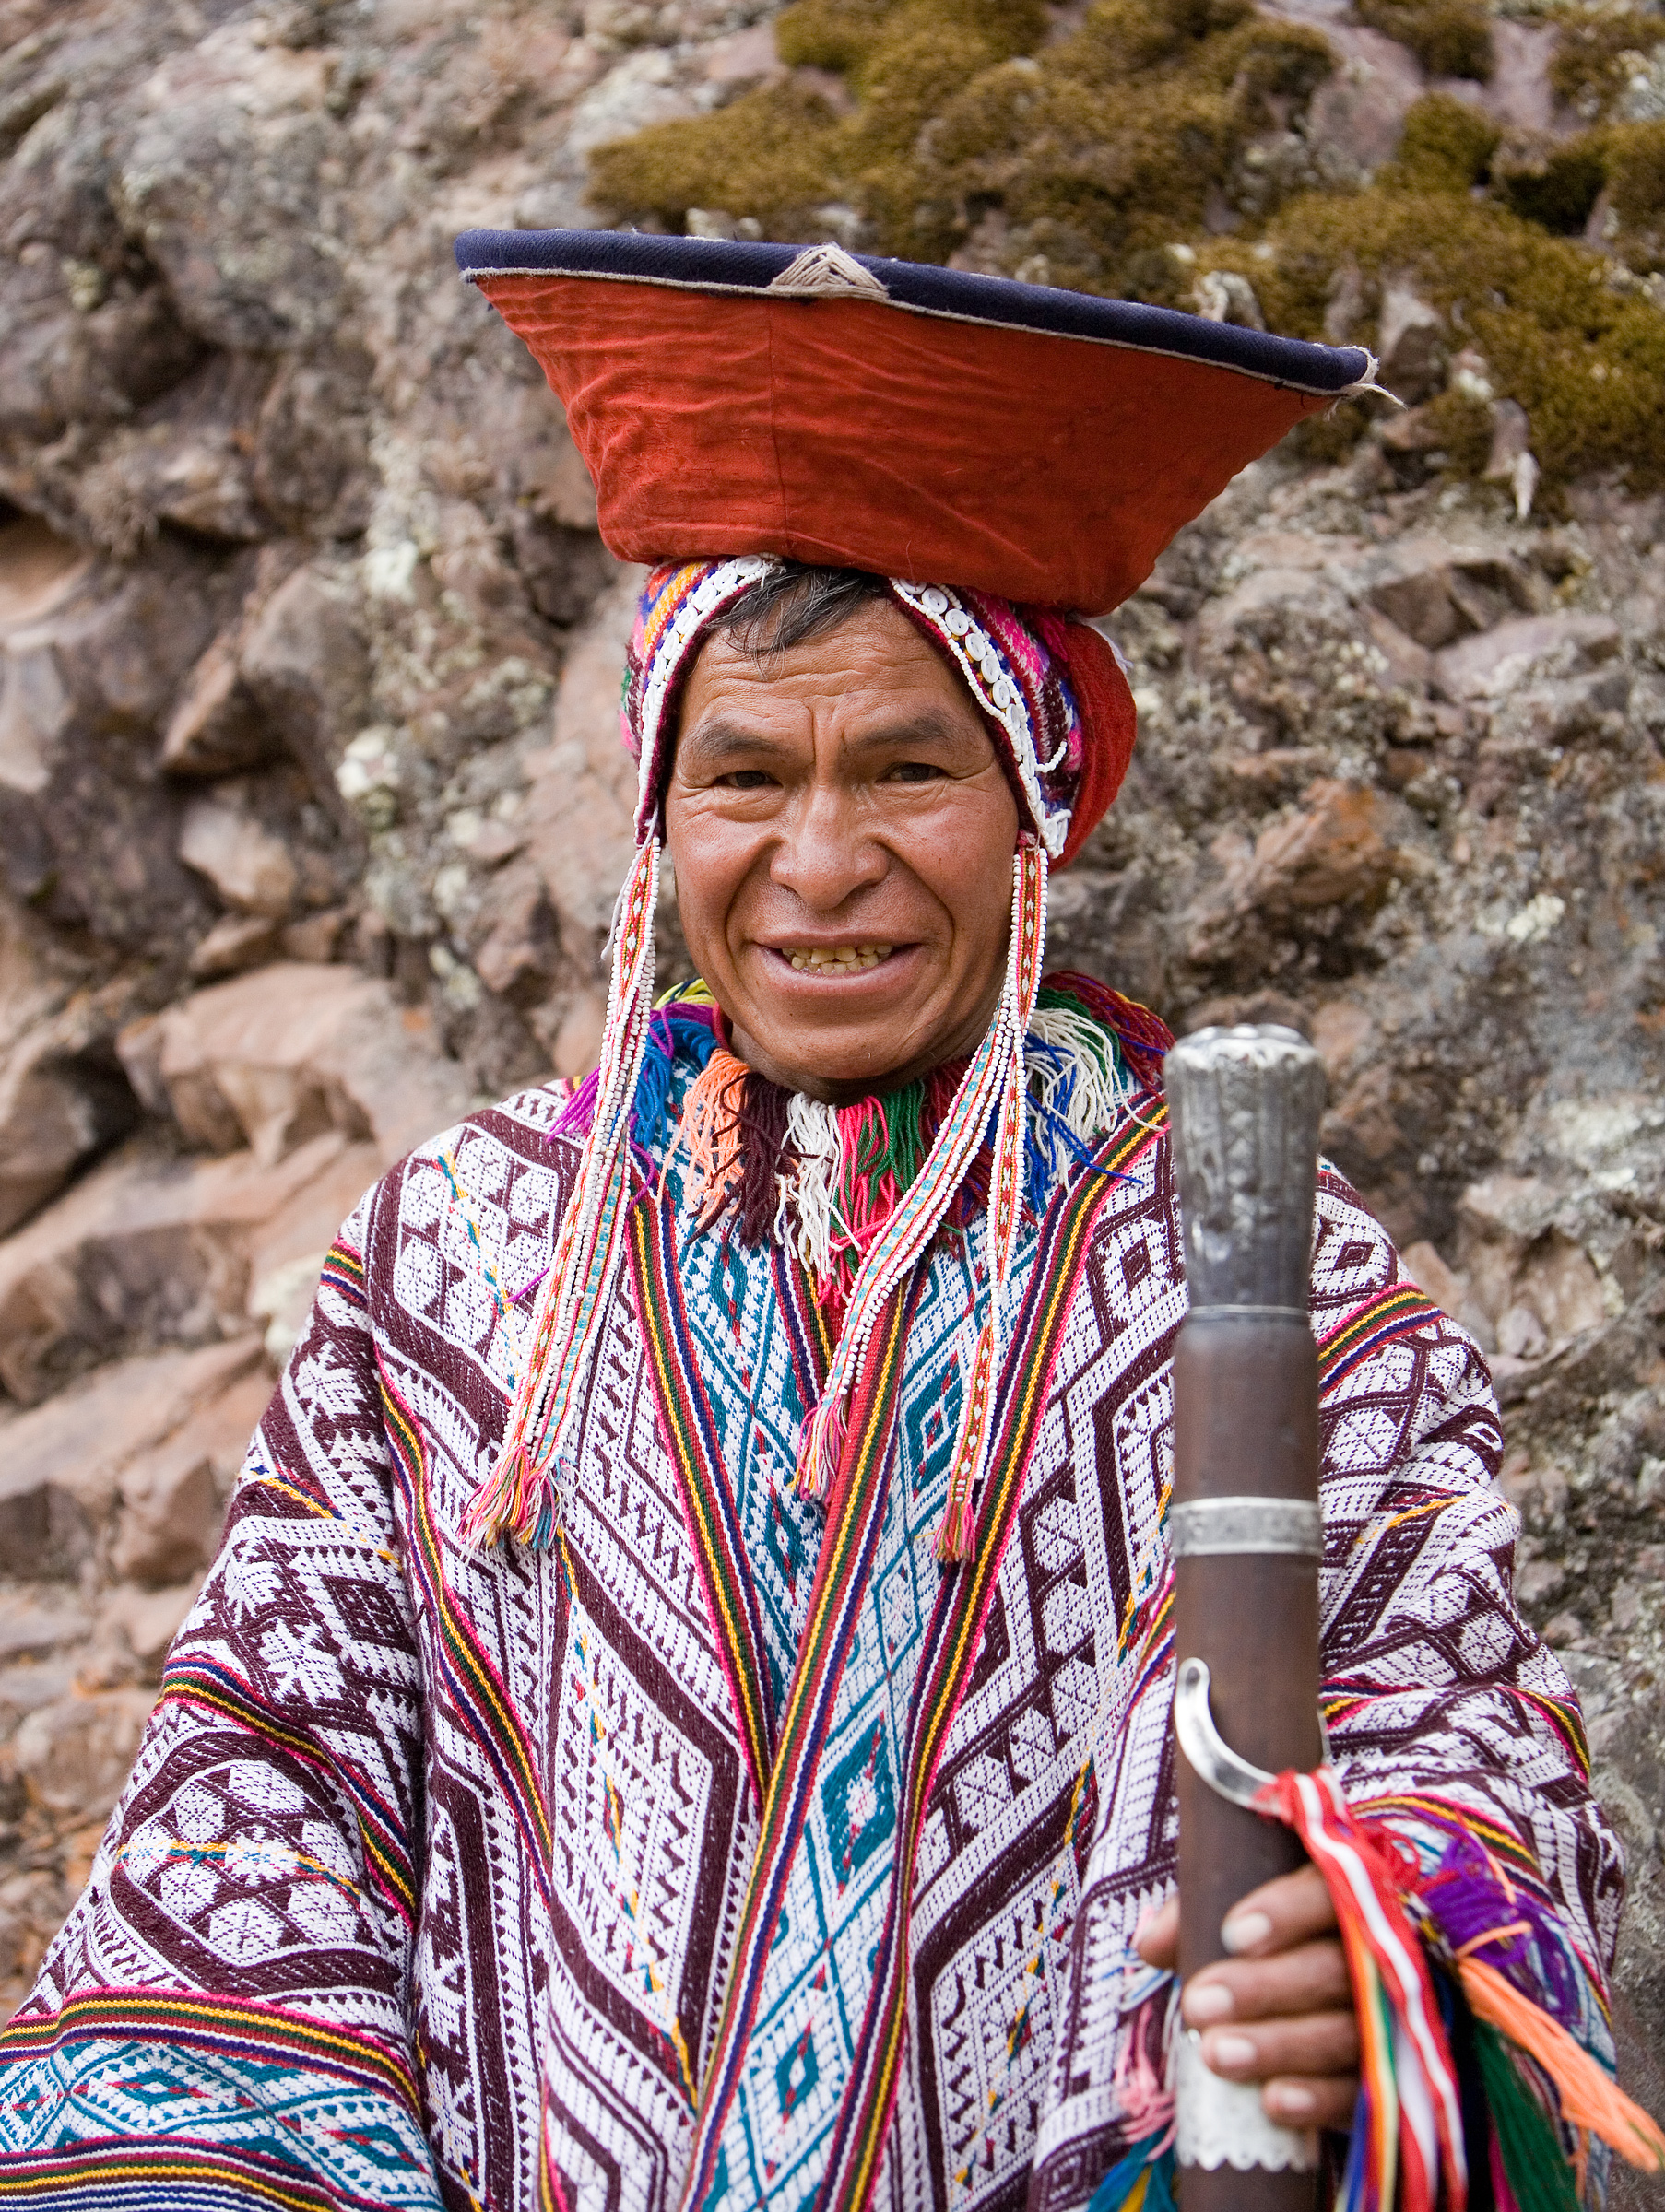 Indigenous Peruvian People